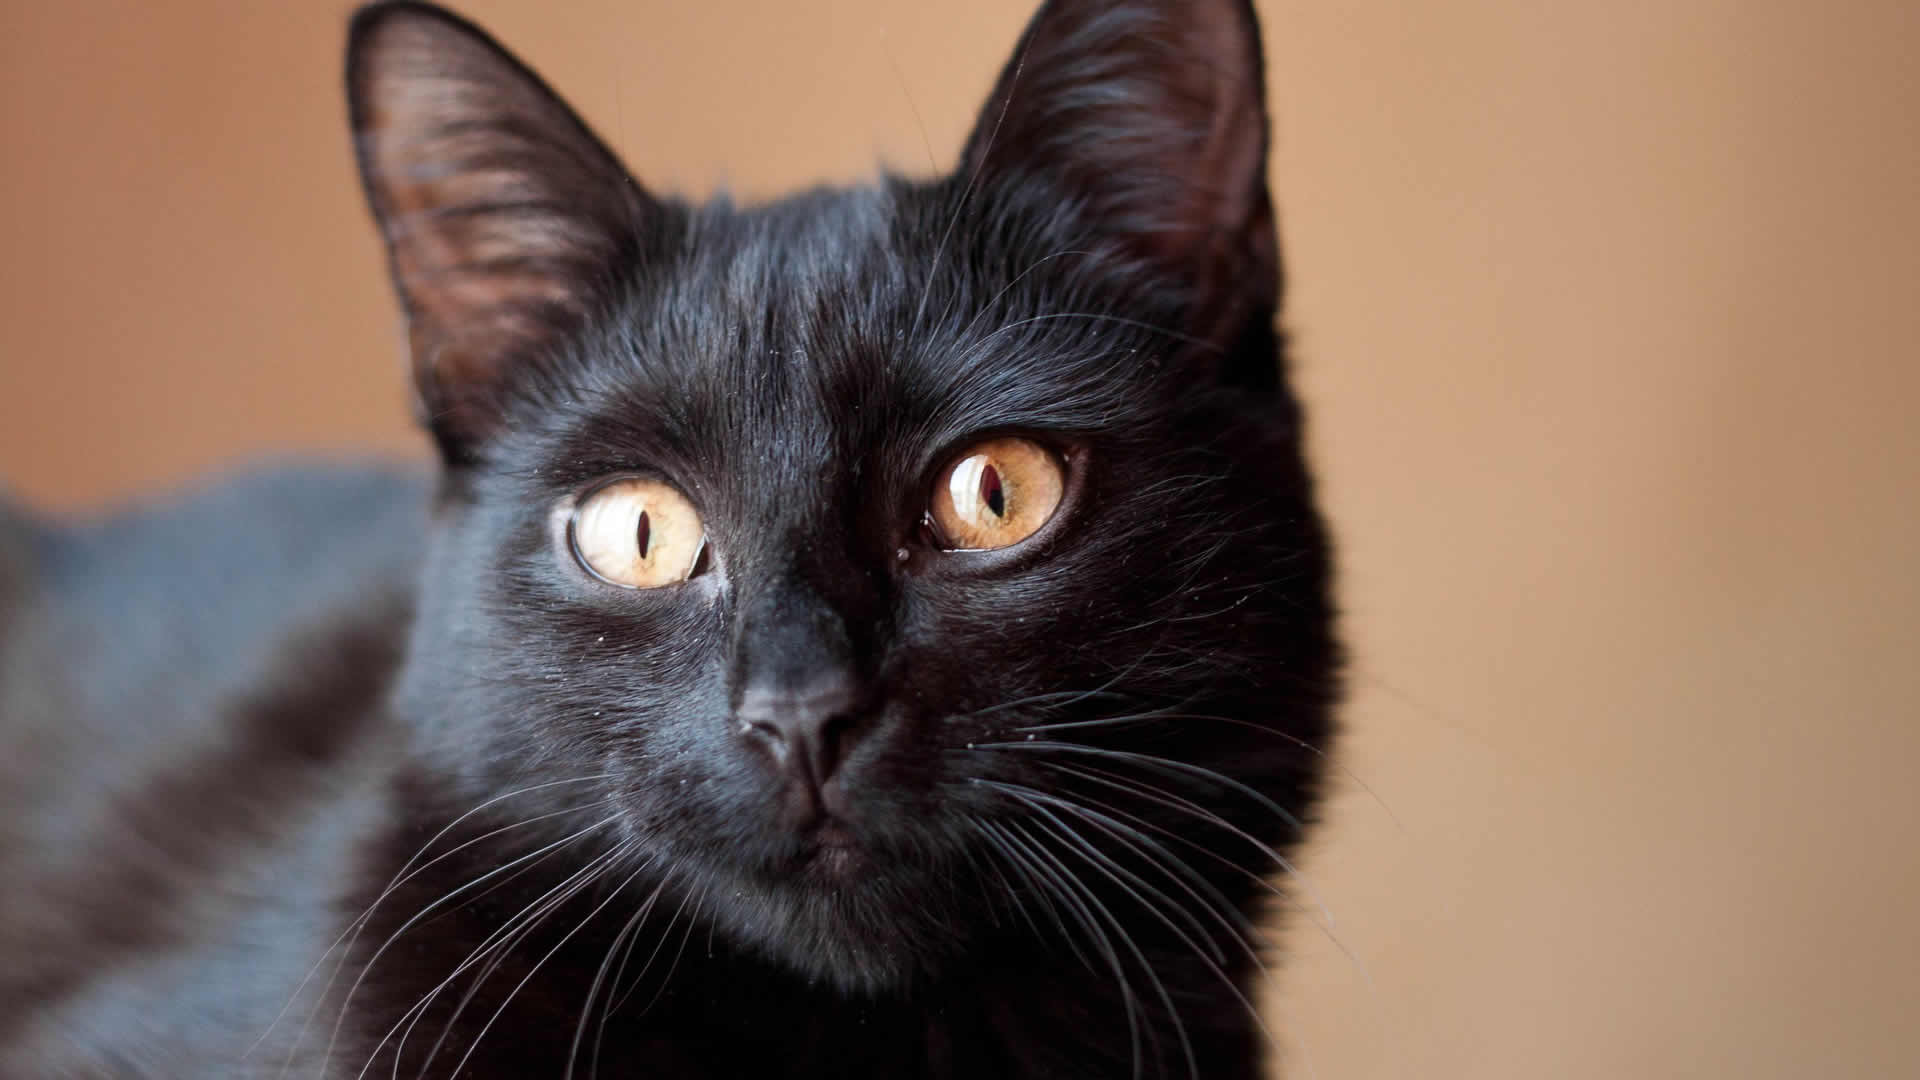 Like the wild panther, this breed also has bright and alert eyes